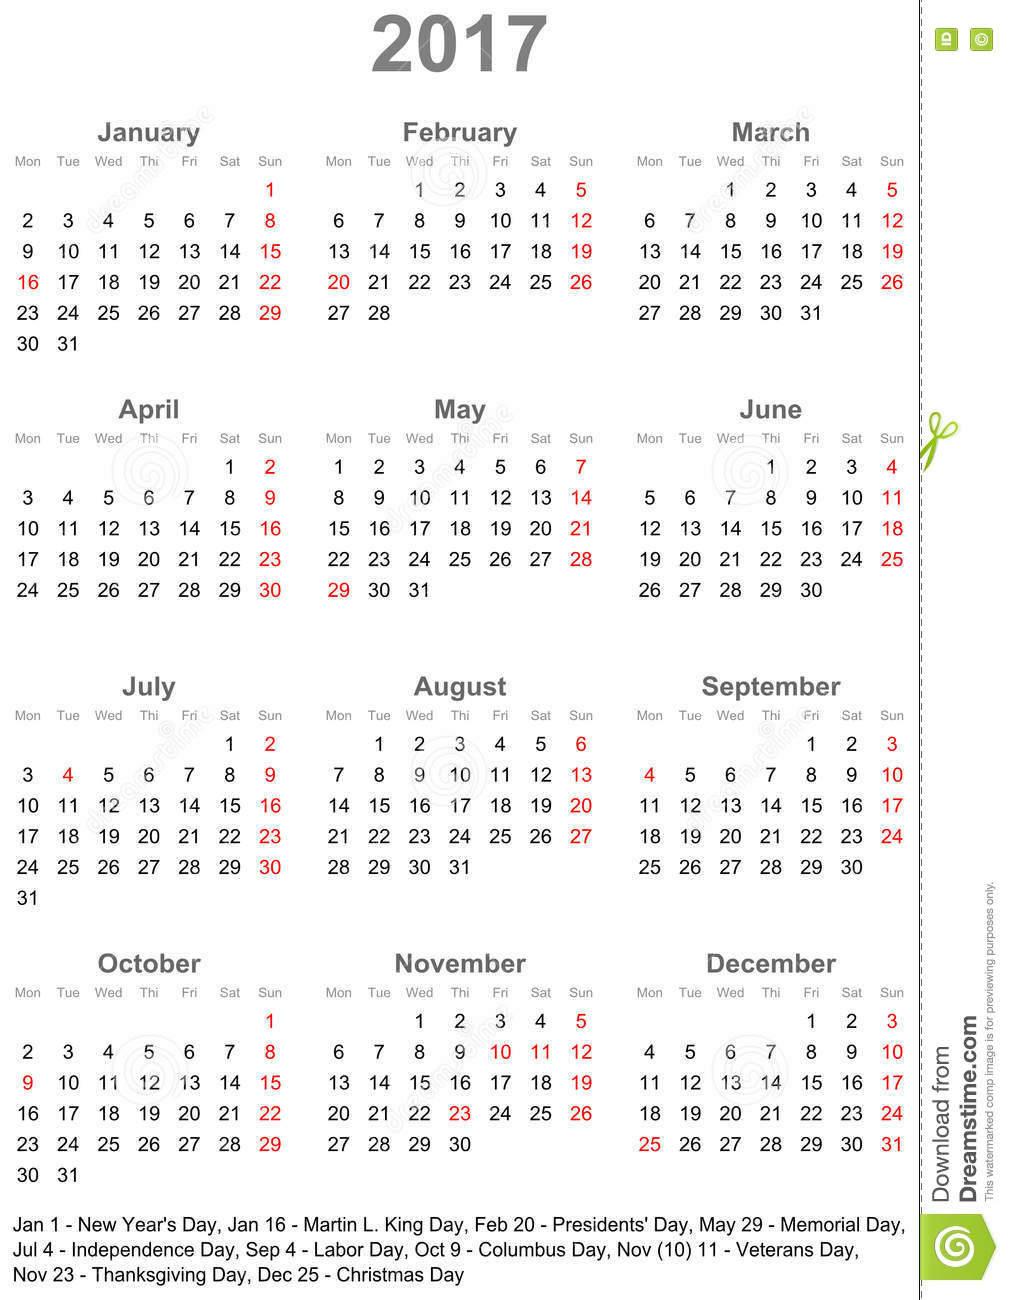 Simple Calendar 2017 With Public Holidays For The USA